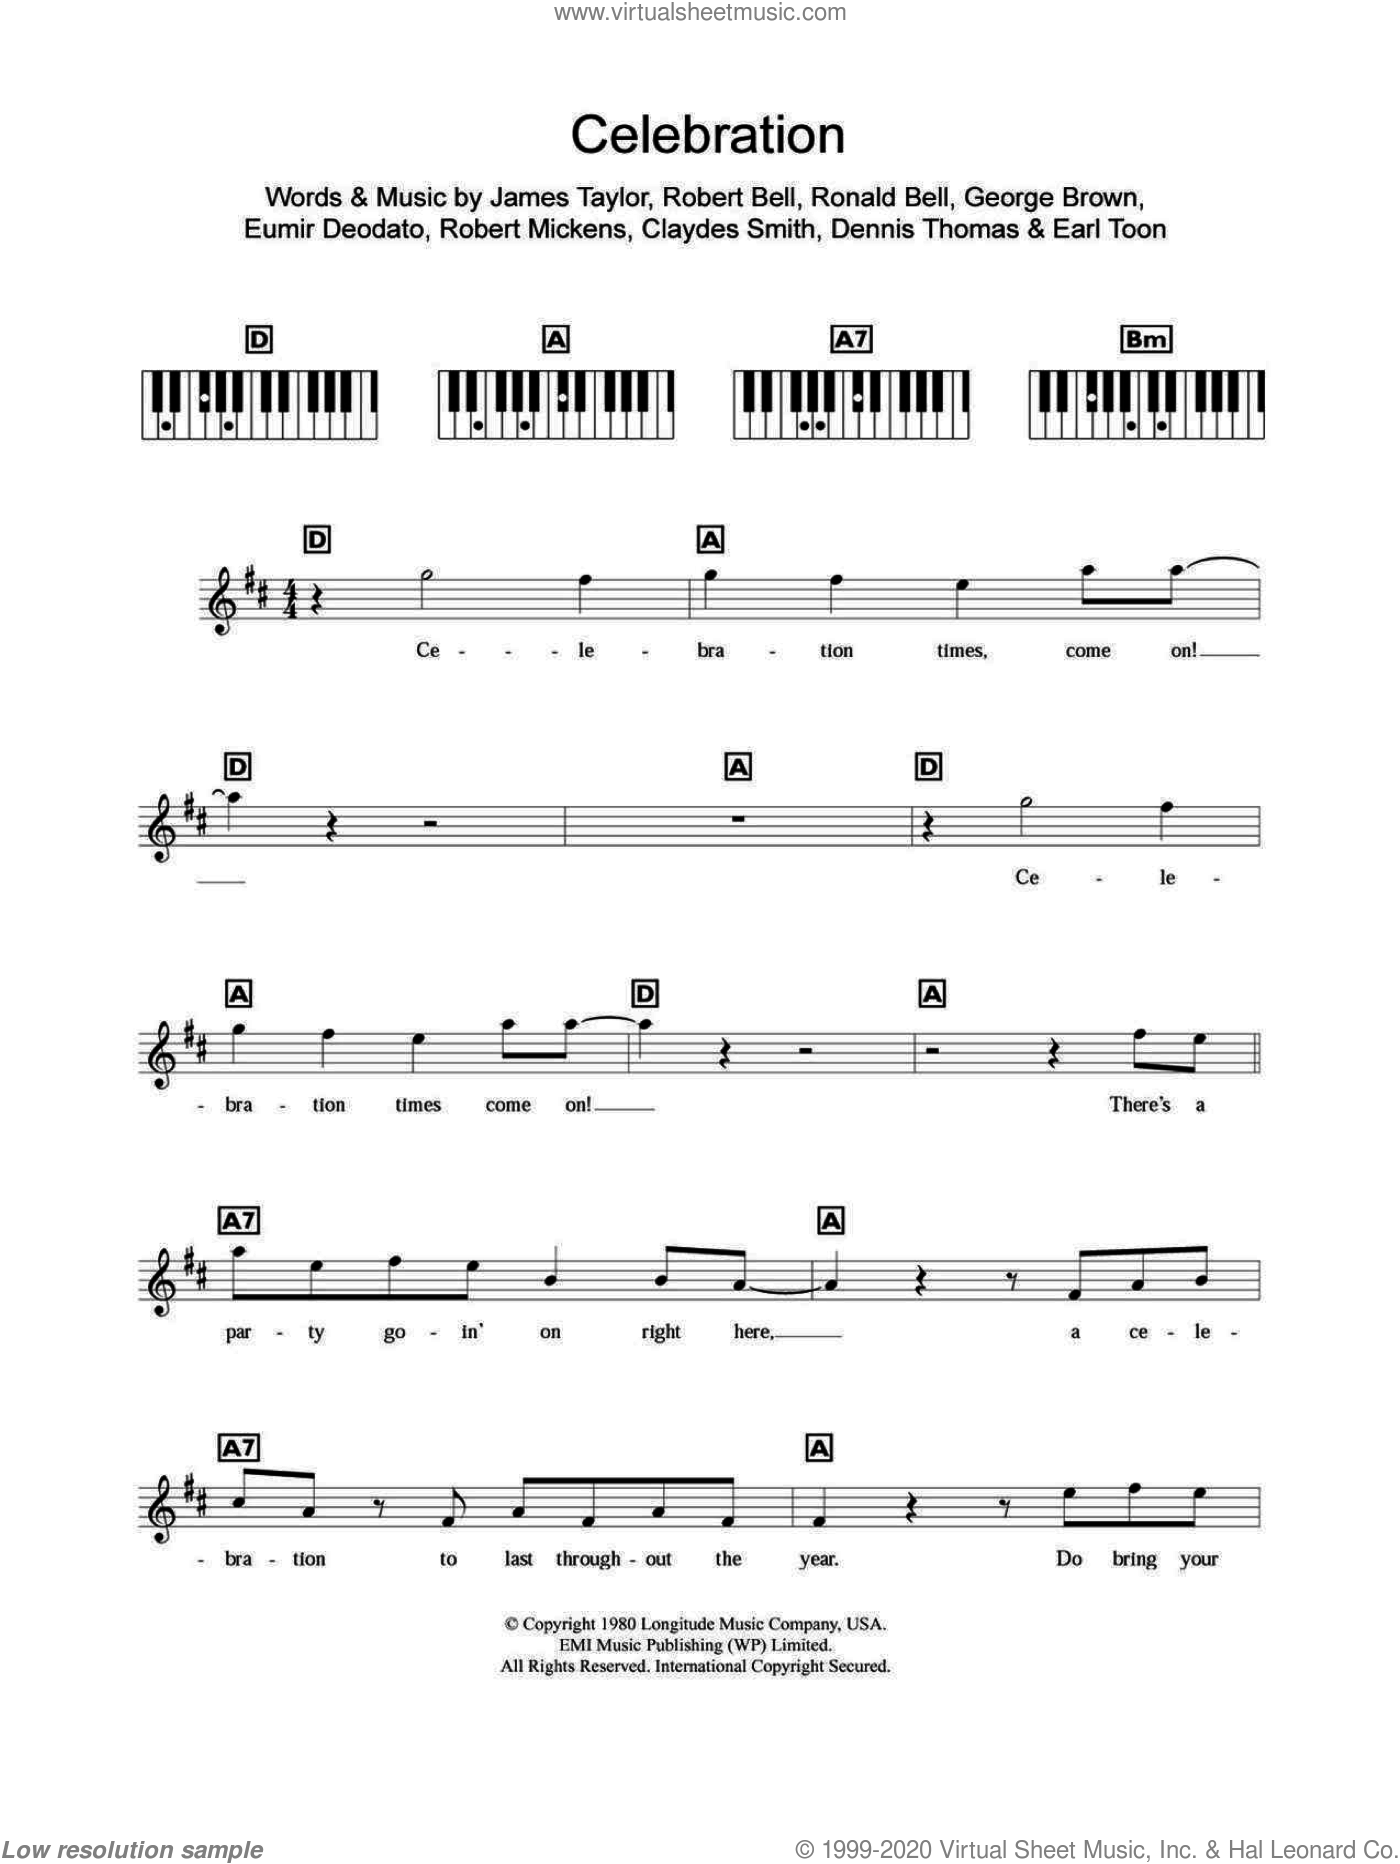 Celebration sheet music for piano solo (chords, lyrics, melody) by Kool And The Gang, Claydes Smith, Dennis Thomas, Earl Toon, Eumir Deodato, George Brown, James Taylor, Robert Bell, Robert Mickens and Ronald Bell, intermediate piano (chords, lyrics, melody)